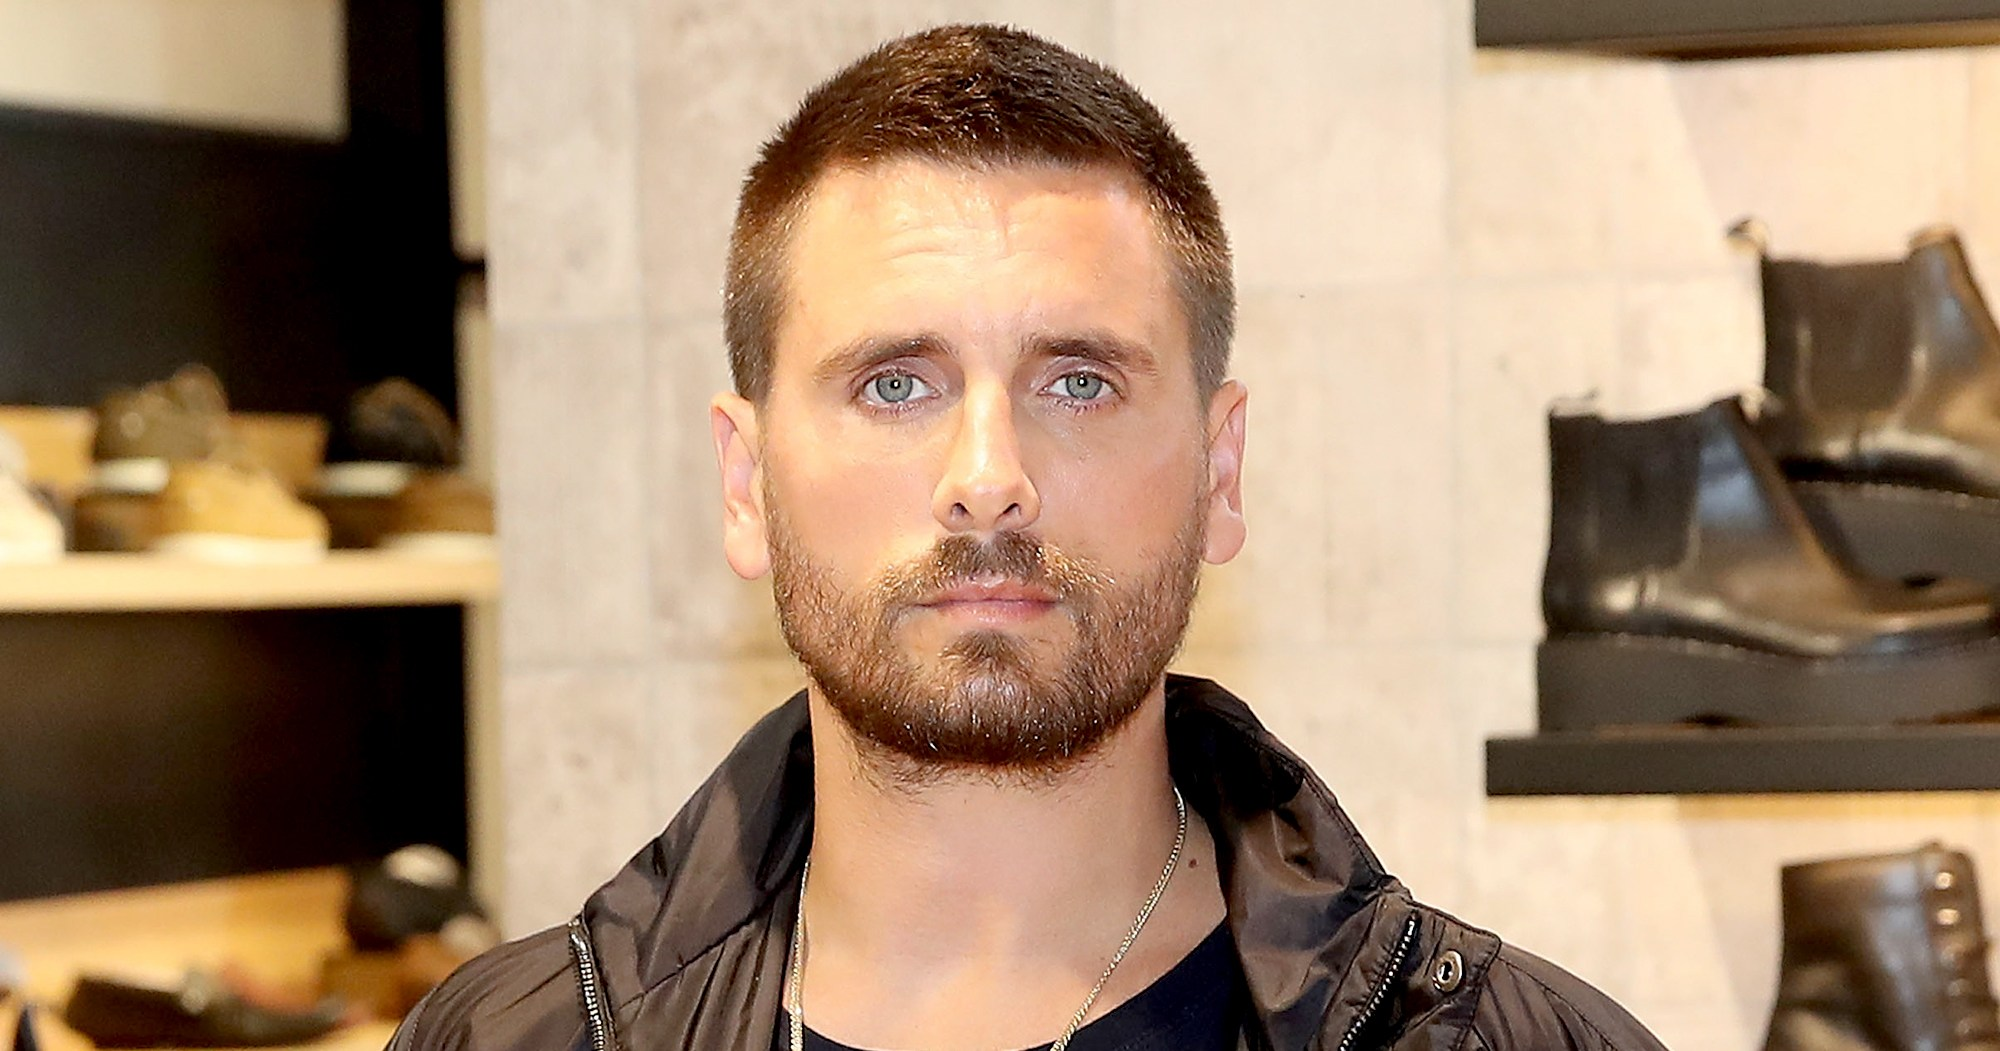 Scott Disick Called 'Racist' for Asian Restaurant Photo With Penelope